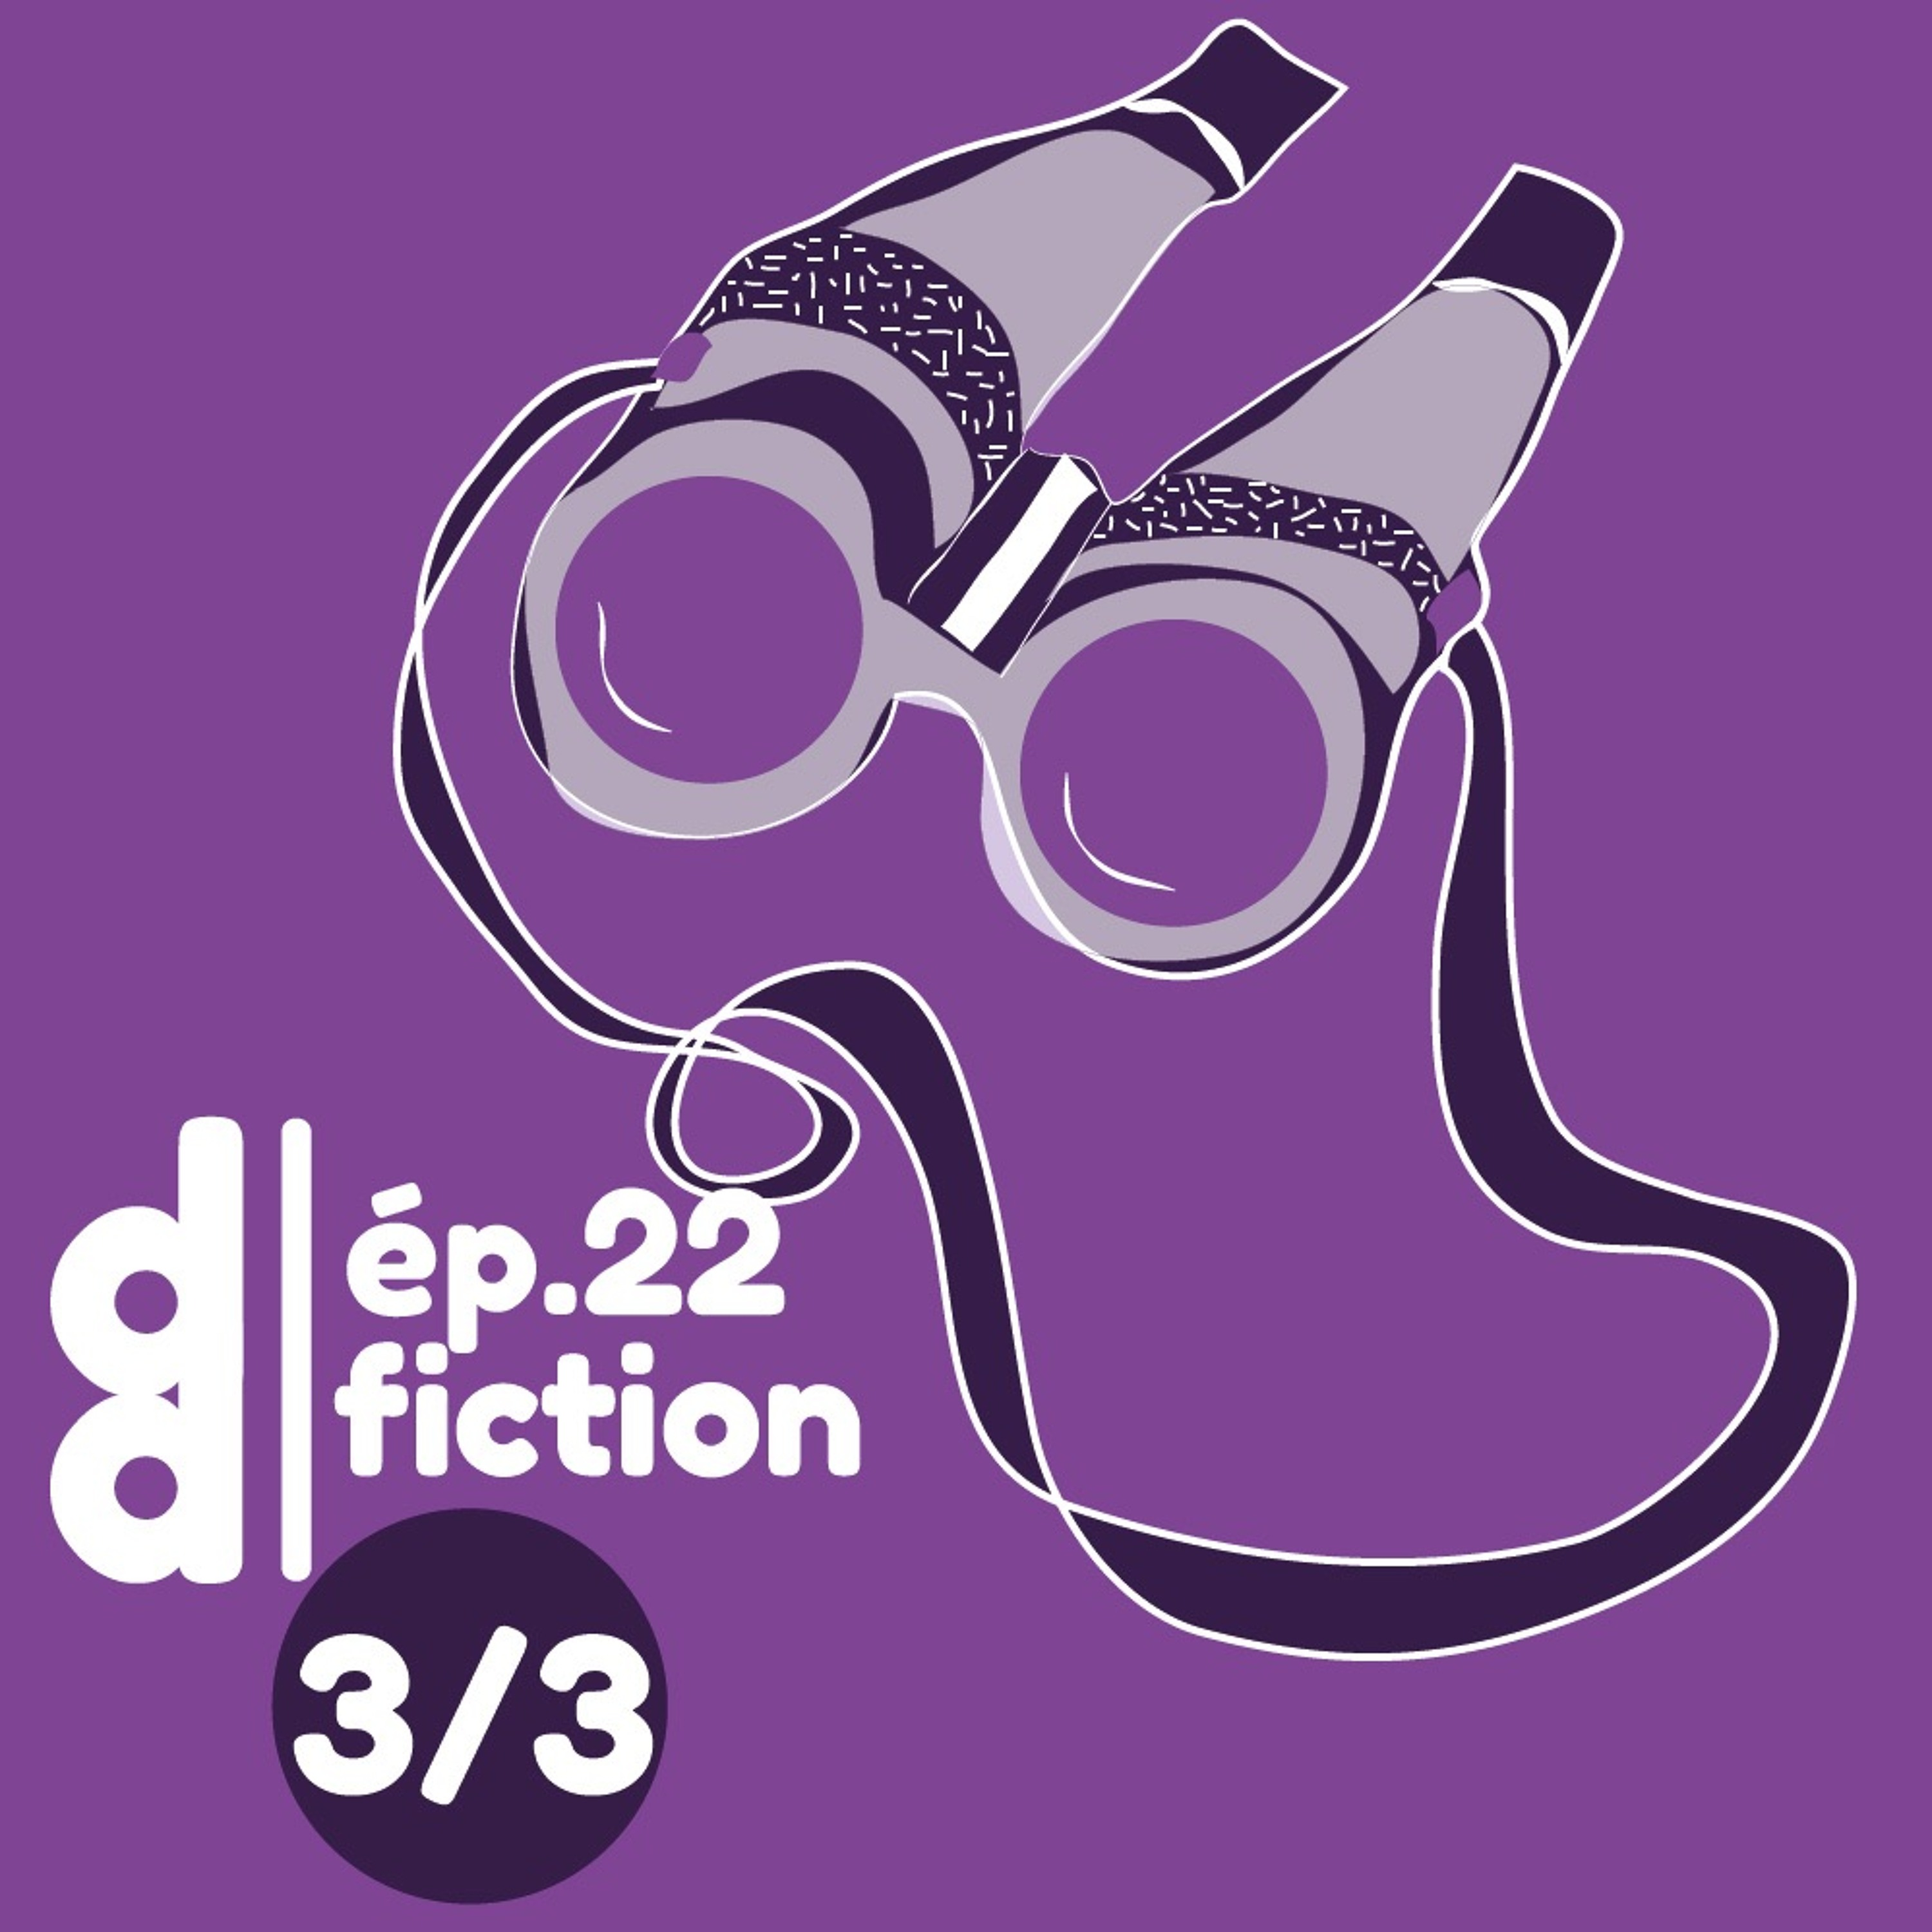 DESSIN DESSEIN // EP22 Fiction - Partie 3 : Design Friction, le dé-centrement au centre